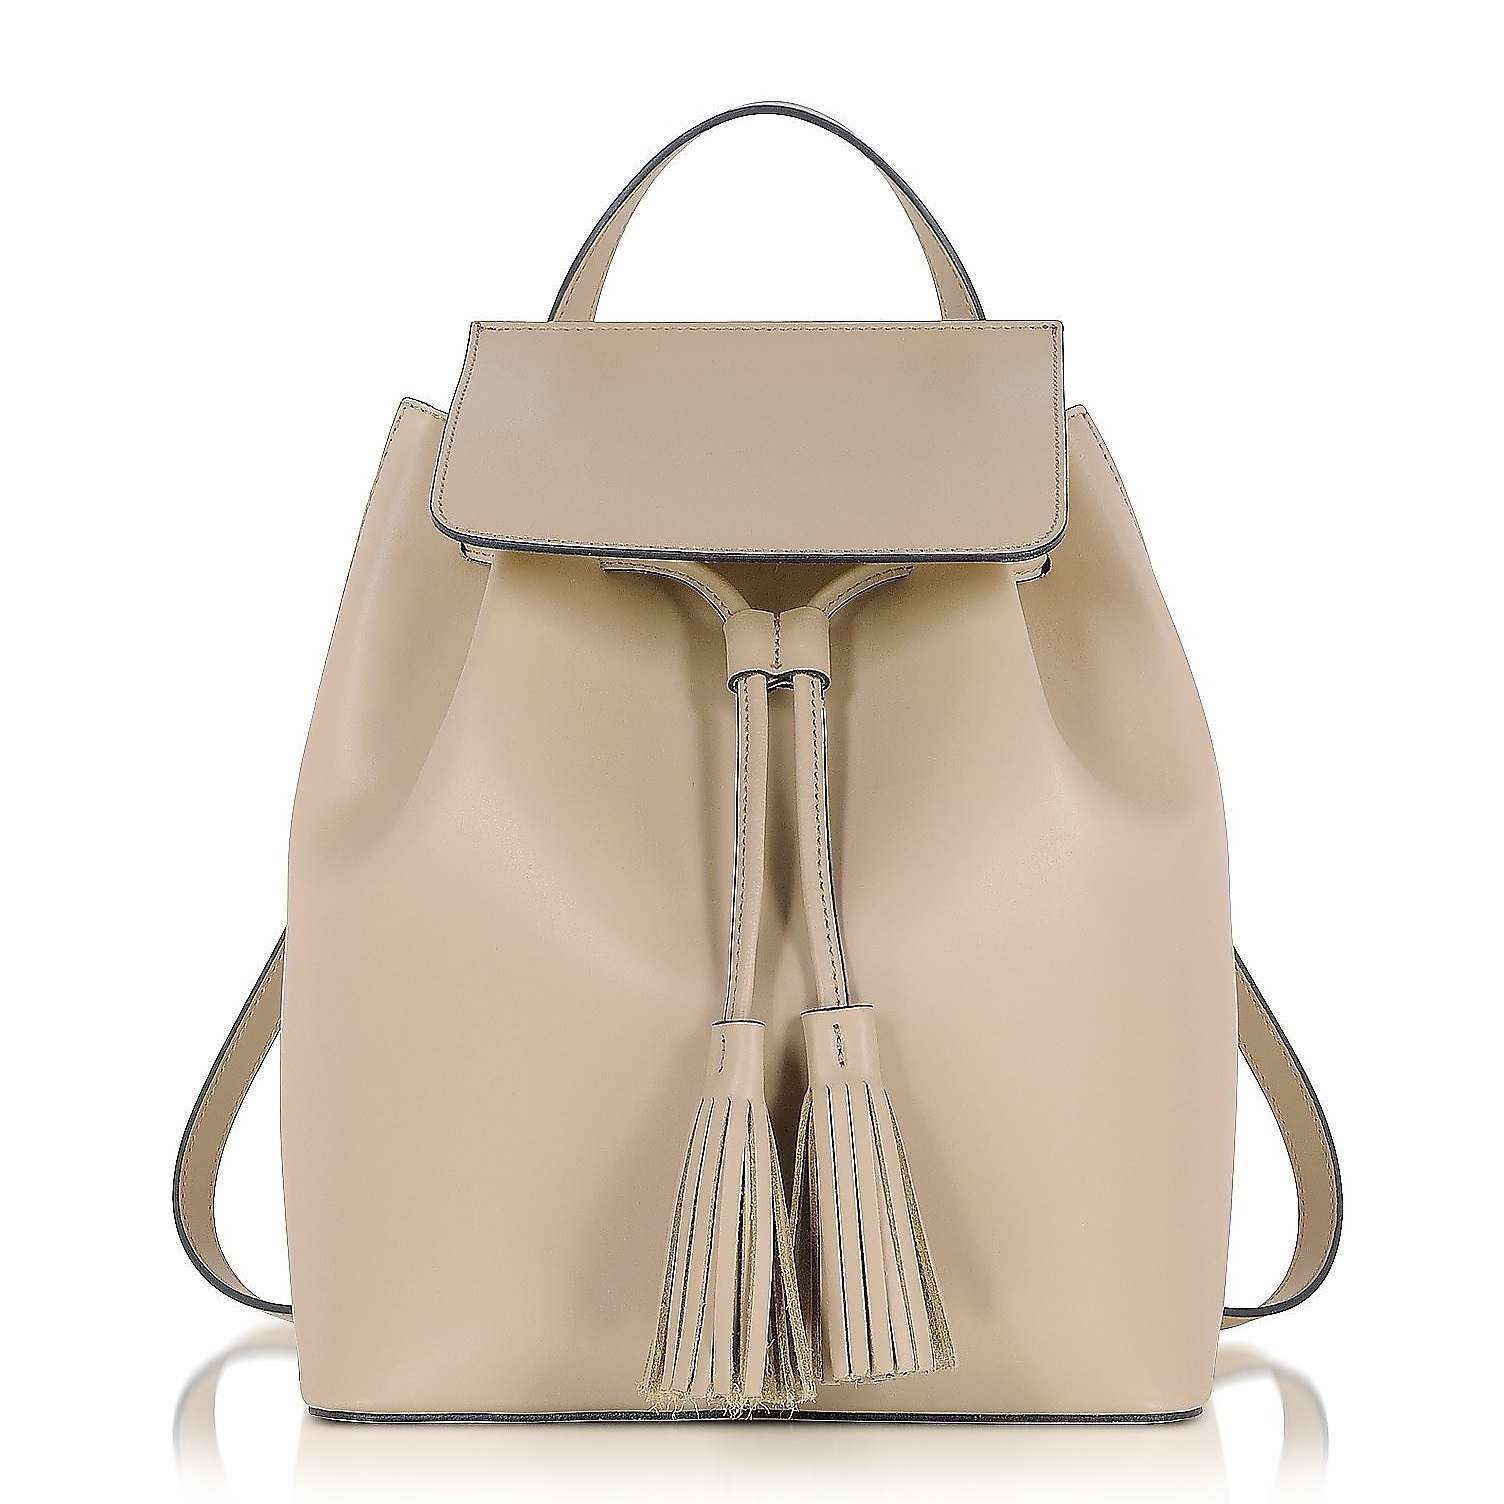 ★LE PARMENTIER★ Nude Leather バックパック 関税込